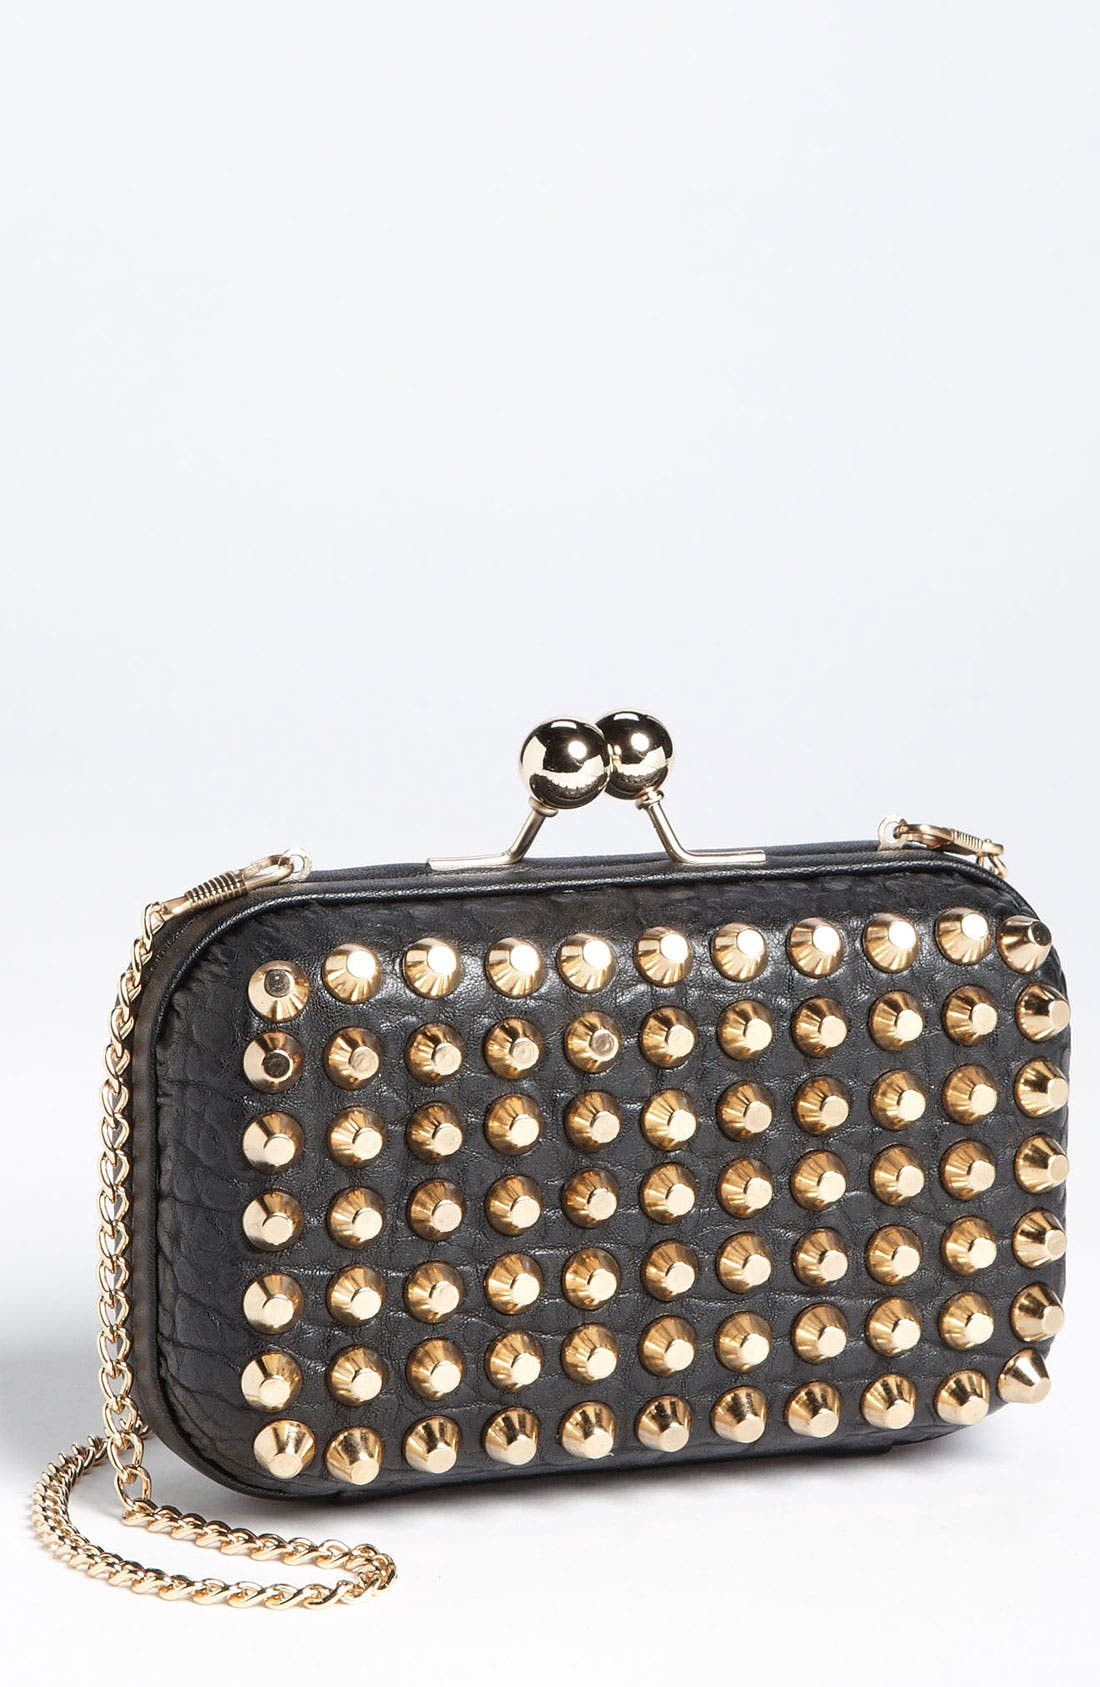 Alternate Image 1 Selected - Street Level Studded Pillbox Clutch